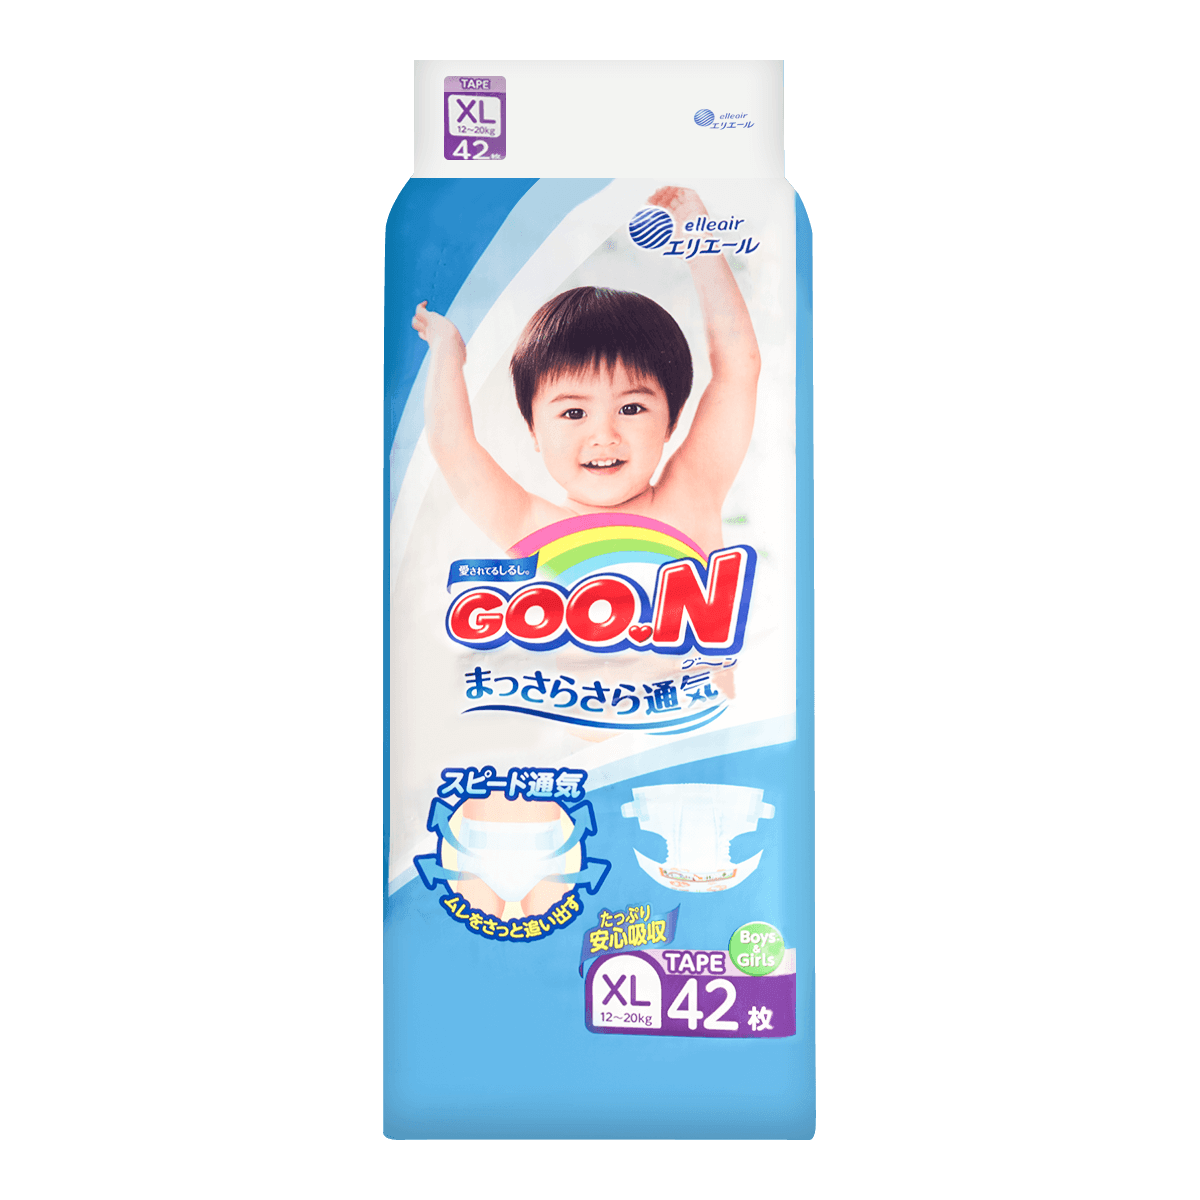 Yamibuy.com:Customer reviews:GOO.N Baby Diaper Tape Type XL Size 12-20kg 42pc (with Vitamin E)